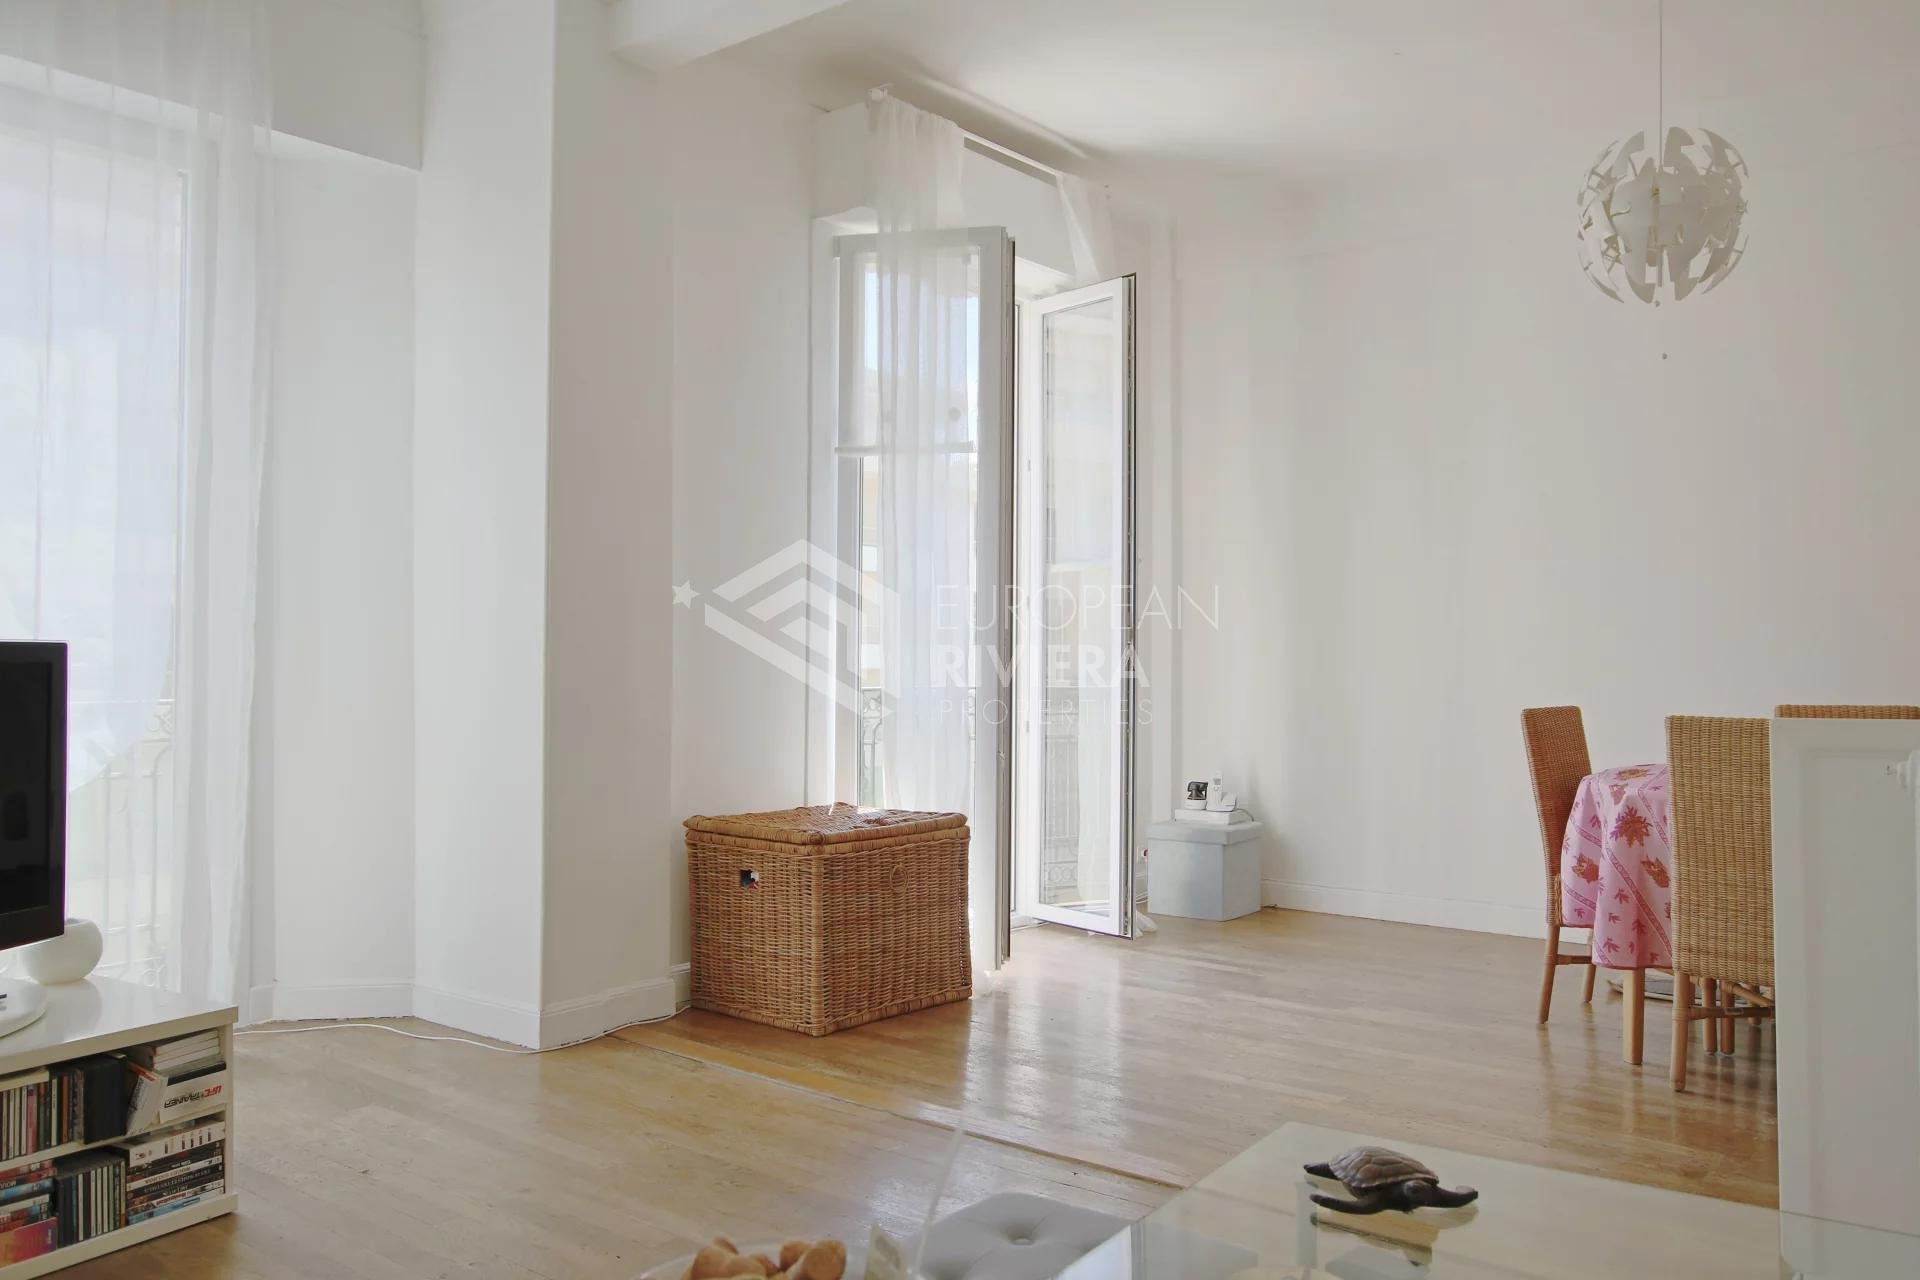 NICE PARC IMPERIAL: 1/2 Bedrooms of 63 sq m with a balcony